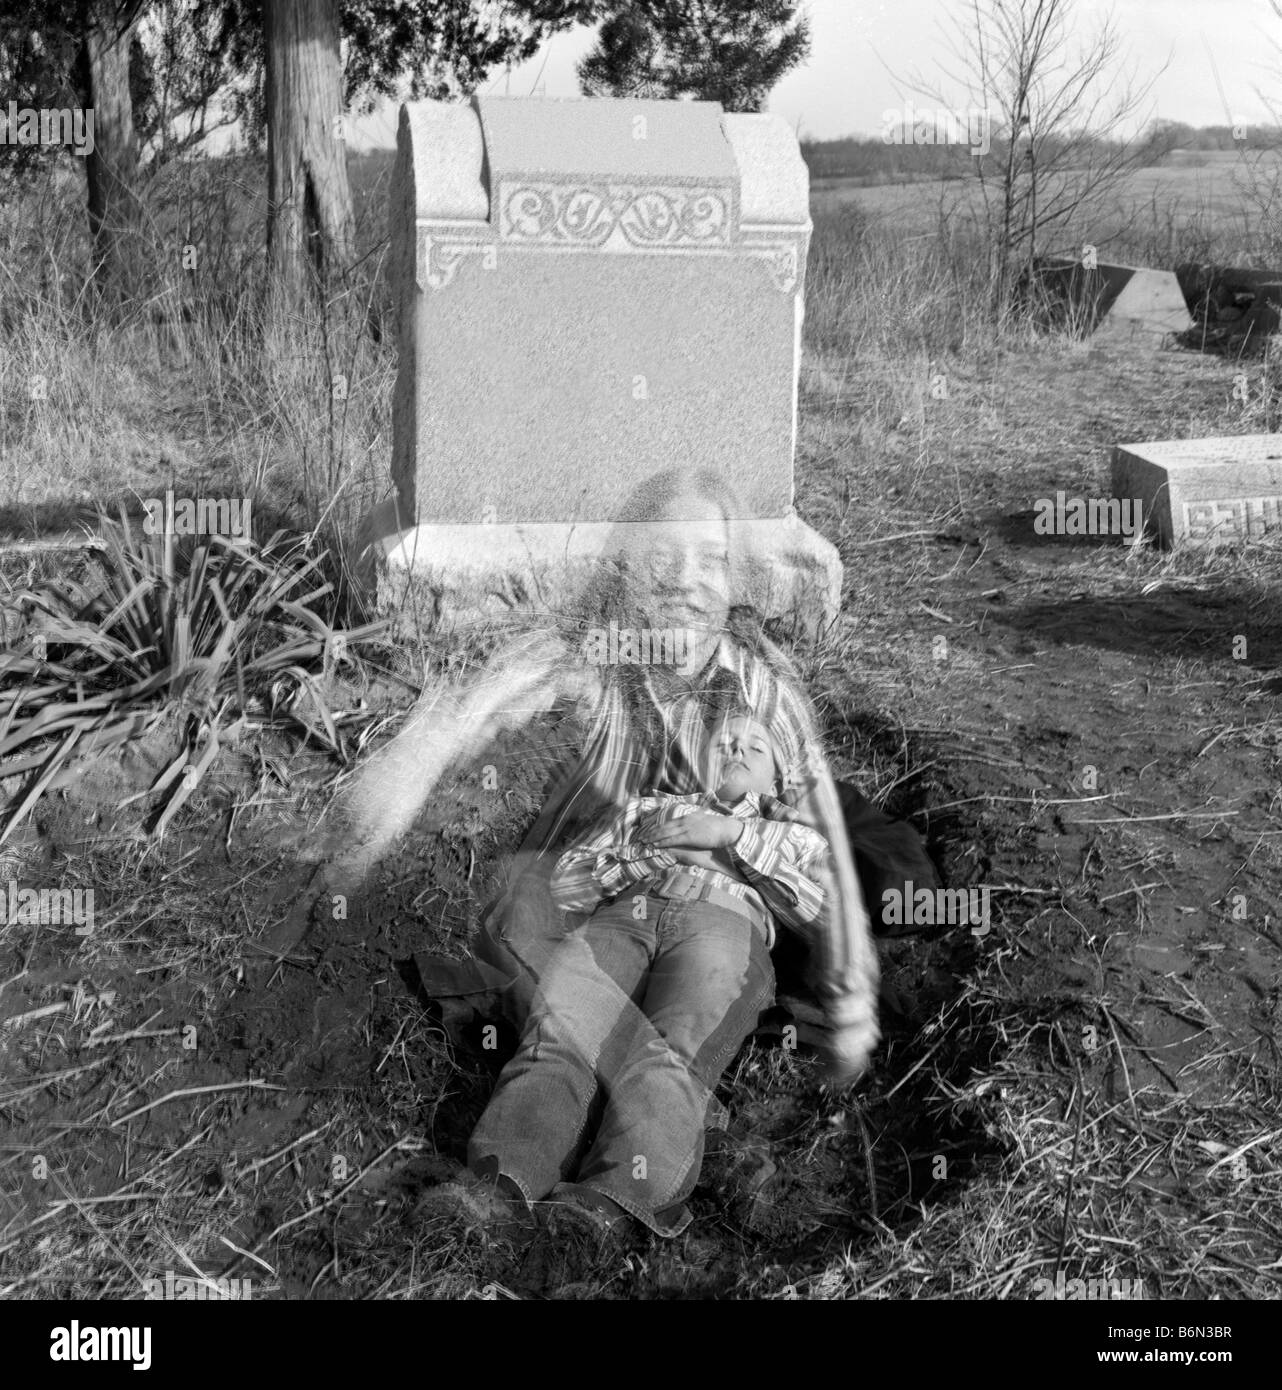 Girl Rising From Dead Coming Out Of Grave Stock Photo